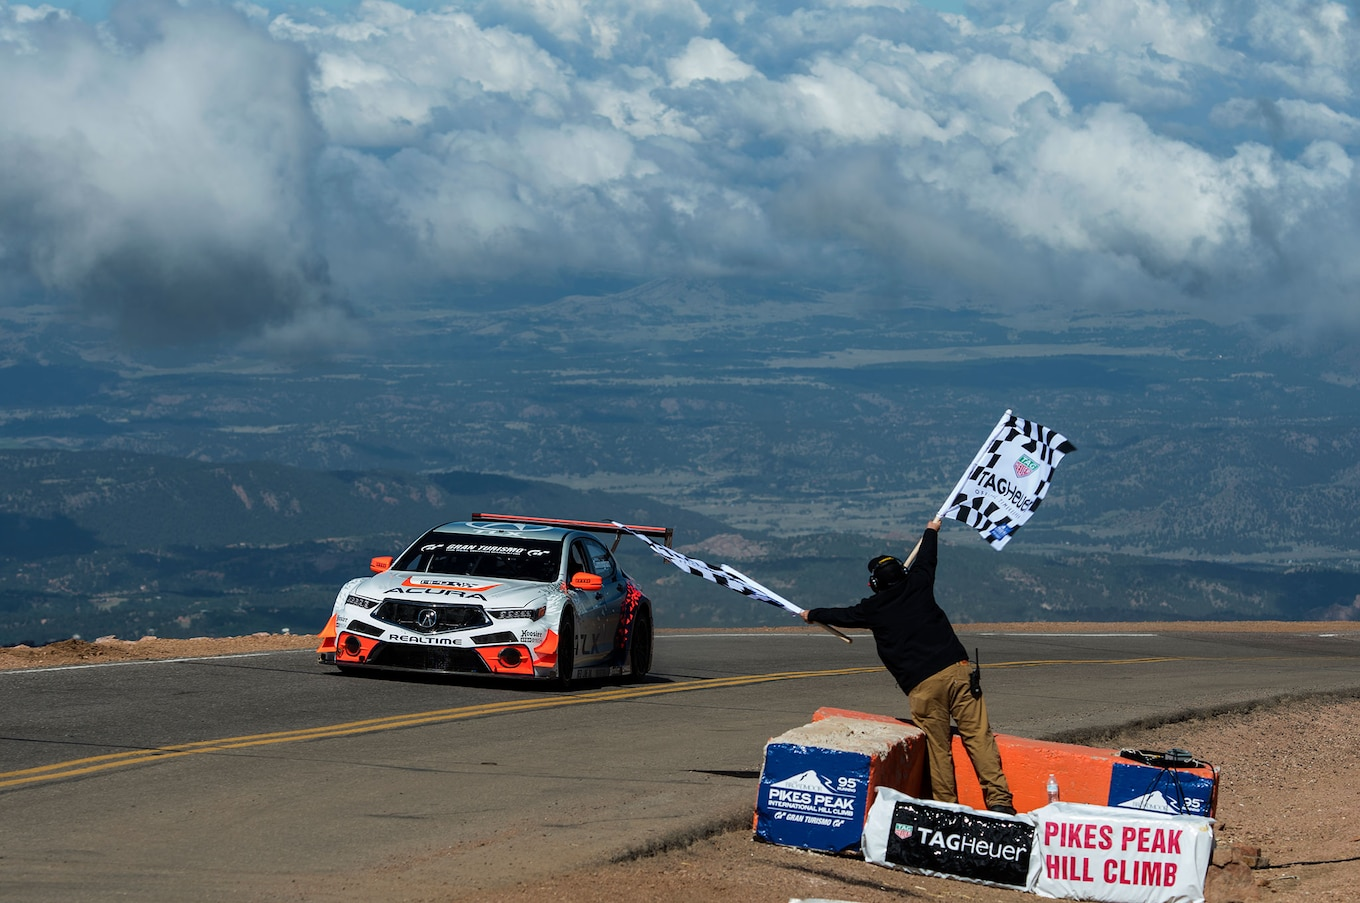 Acura TLX GT Race Car Finishes Second Overall at Pikes Peak